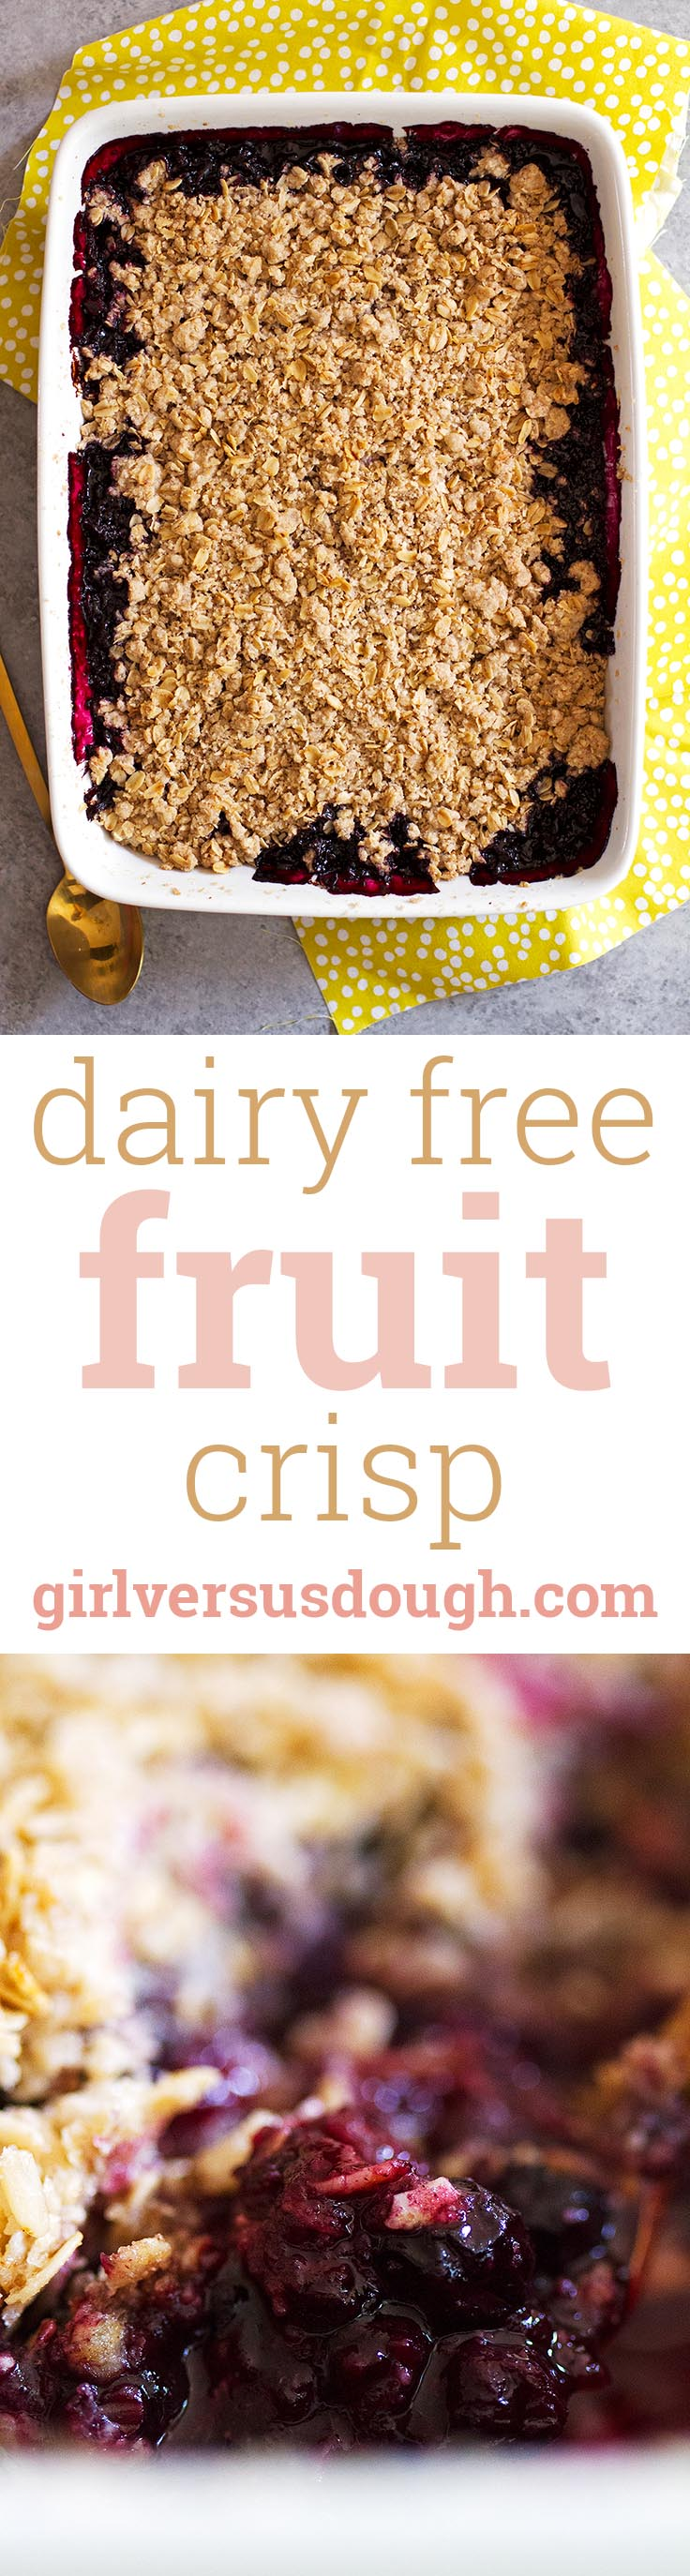 Dairy Free (and Gluten Free) Fruit Crisp -- Made with coconut oil, gluten free oats and fresh or frozen fruit, you'll crave this easy dessert all year round. girlversusdough.com @girlversusdough